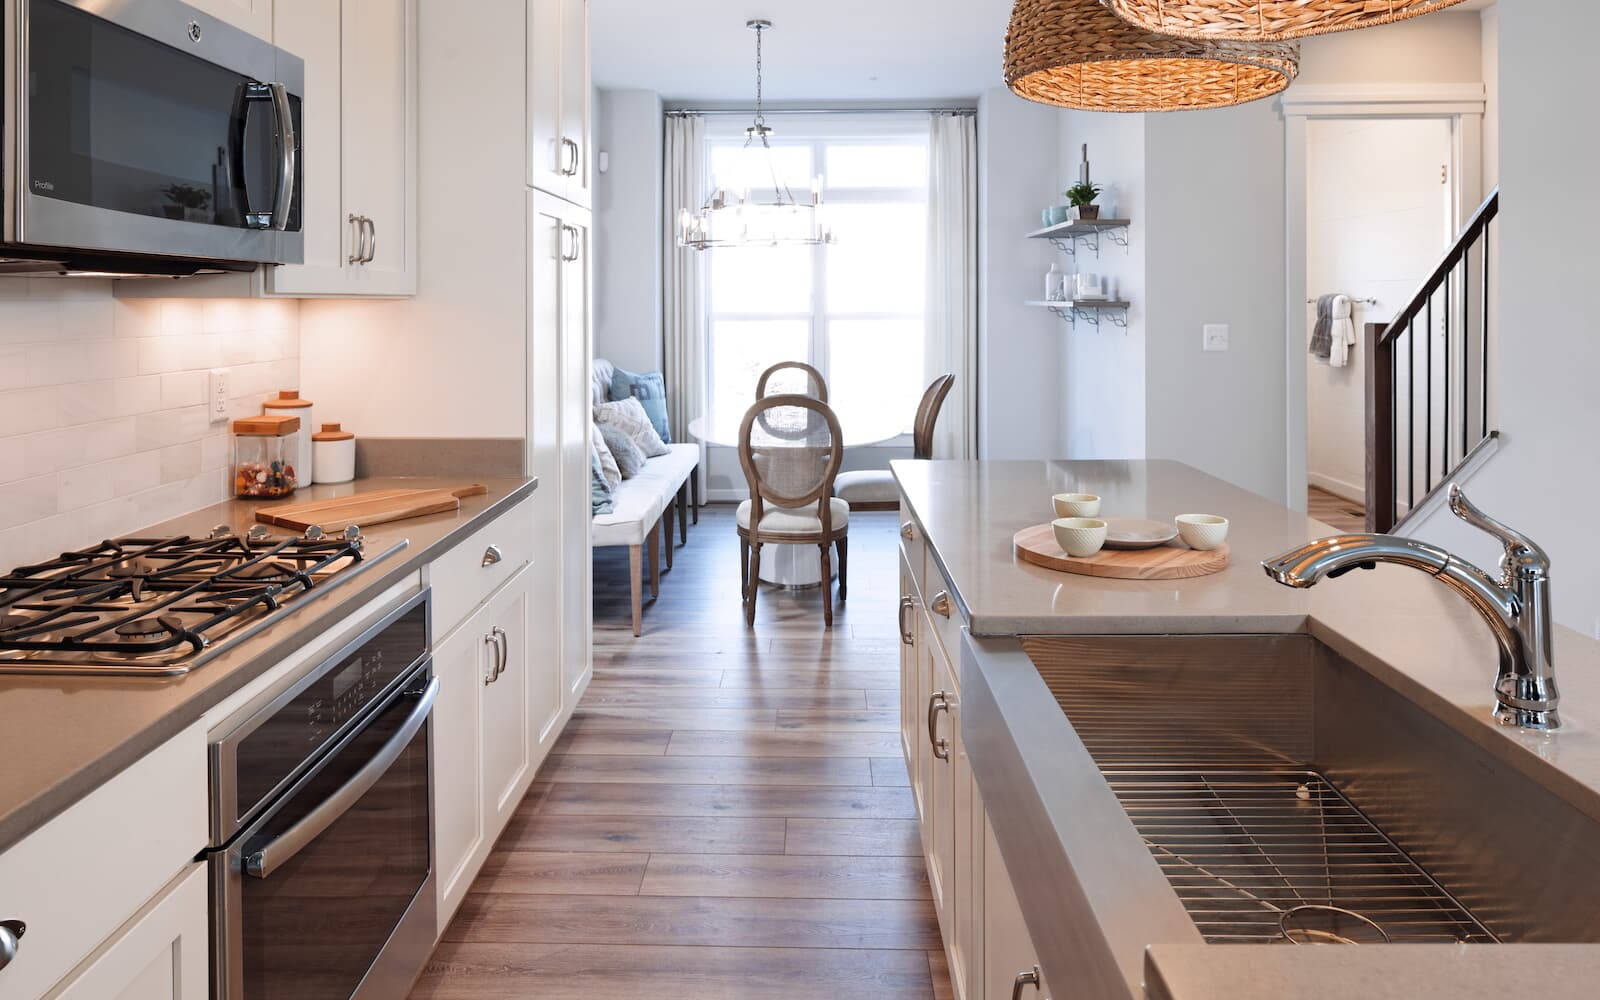 The kitchen of the Baltimore townhome at Admrials Square in Annapolis MD